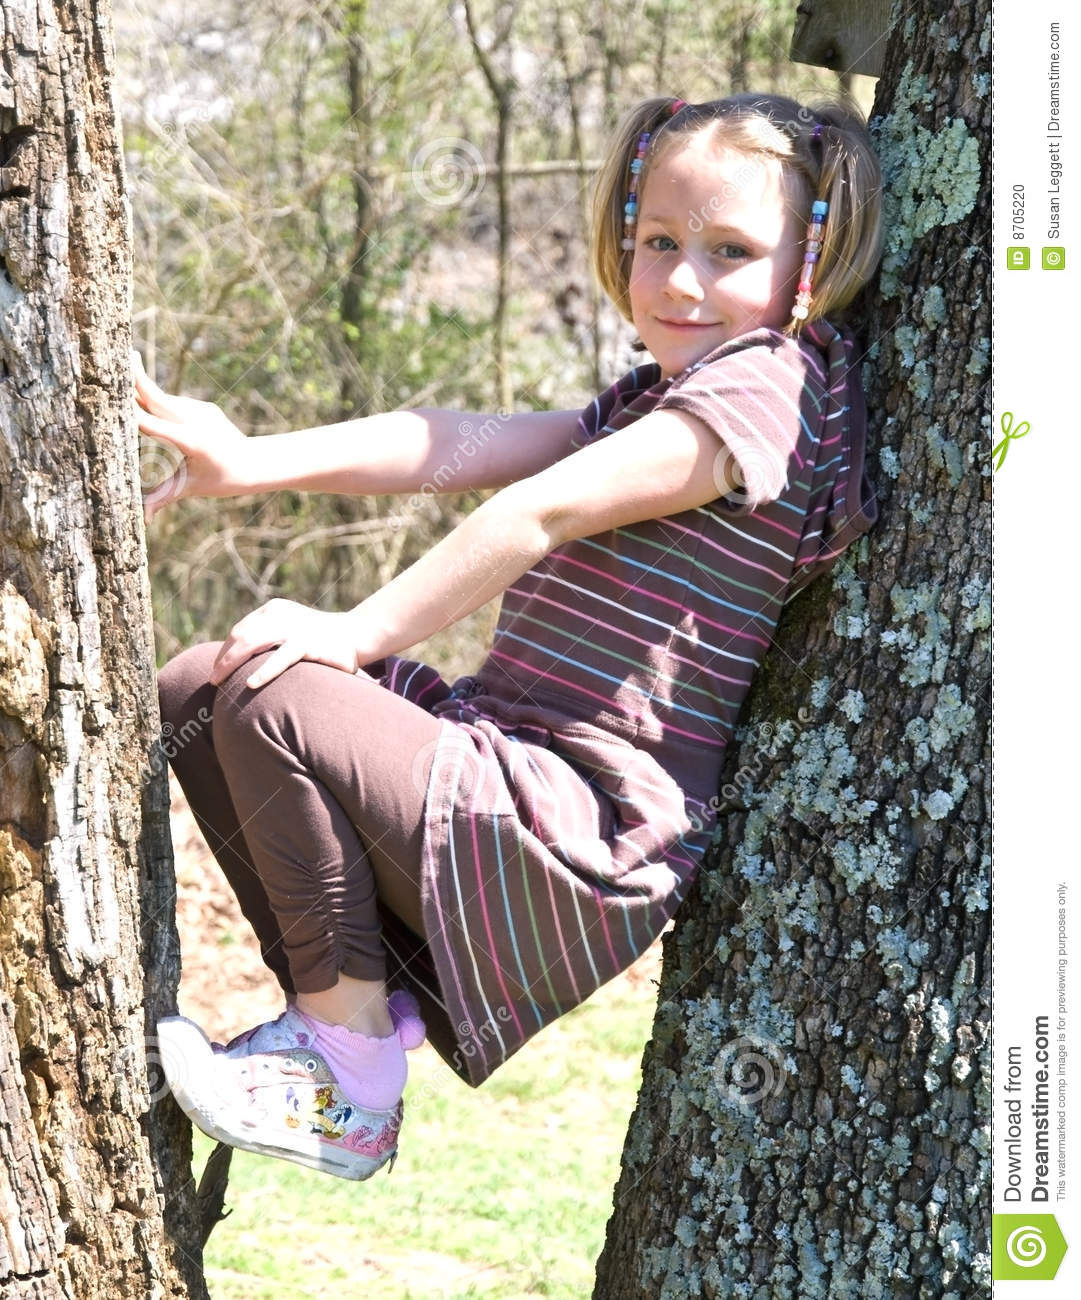 Young Girl in a Tree